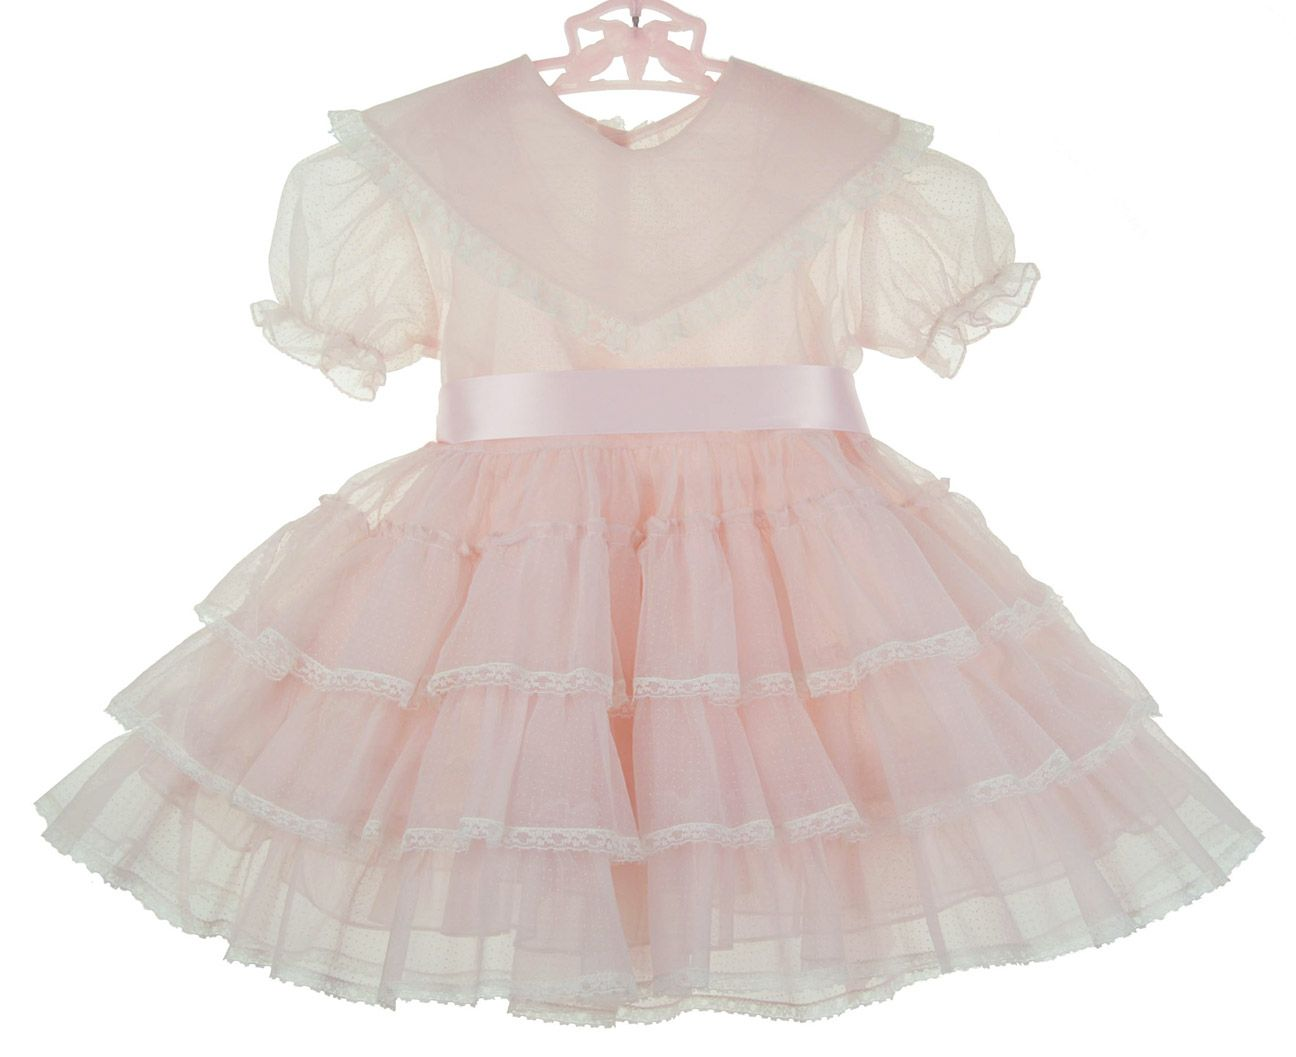 Retro 1950s Pink Dotted Swiss Ruffled Party Dress with Matching Pink Crinoline Slip $85.00